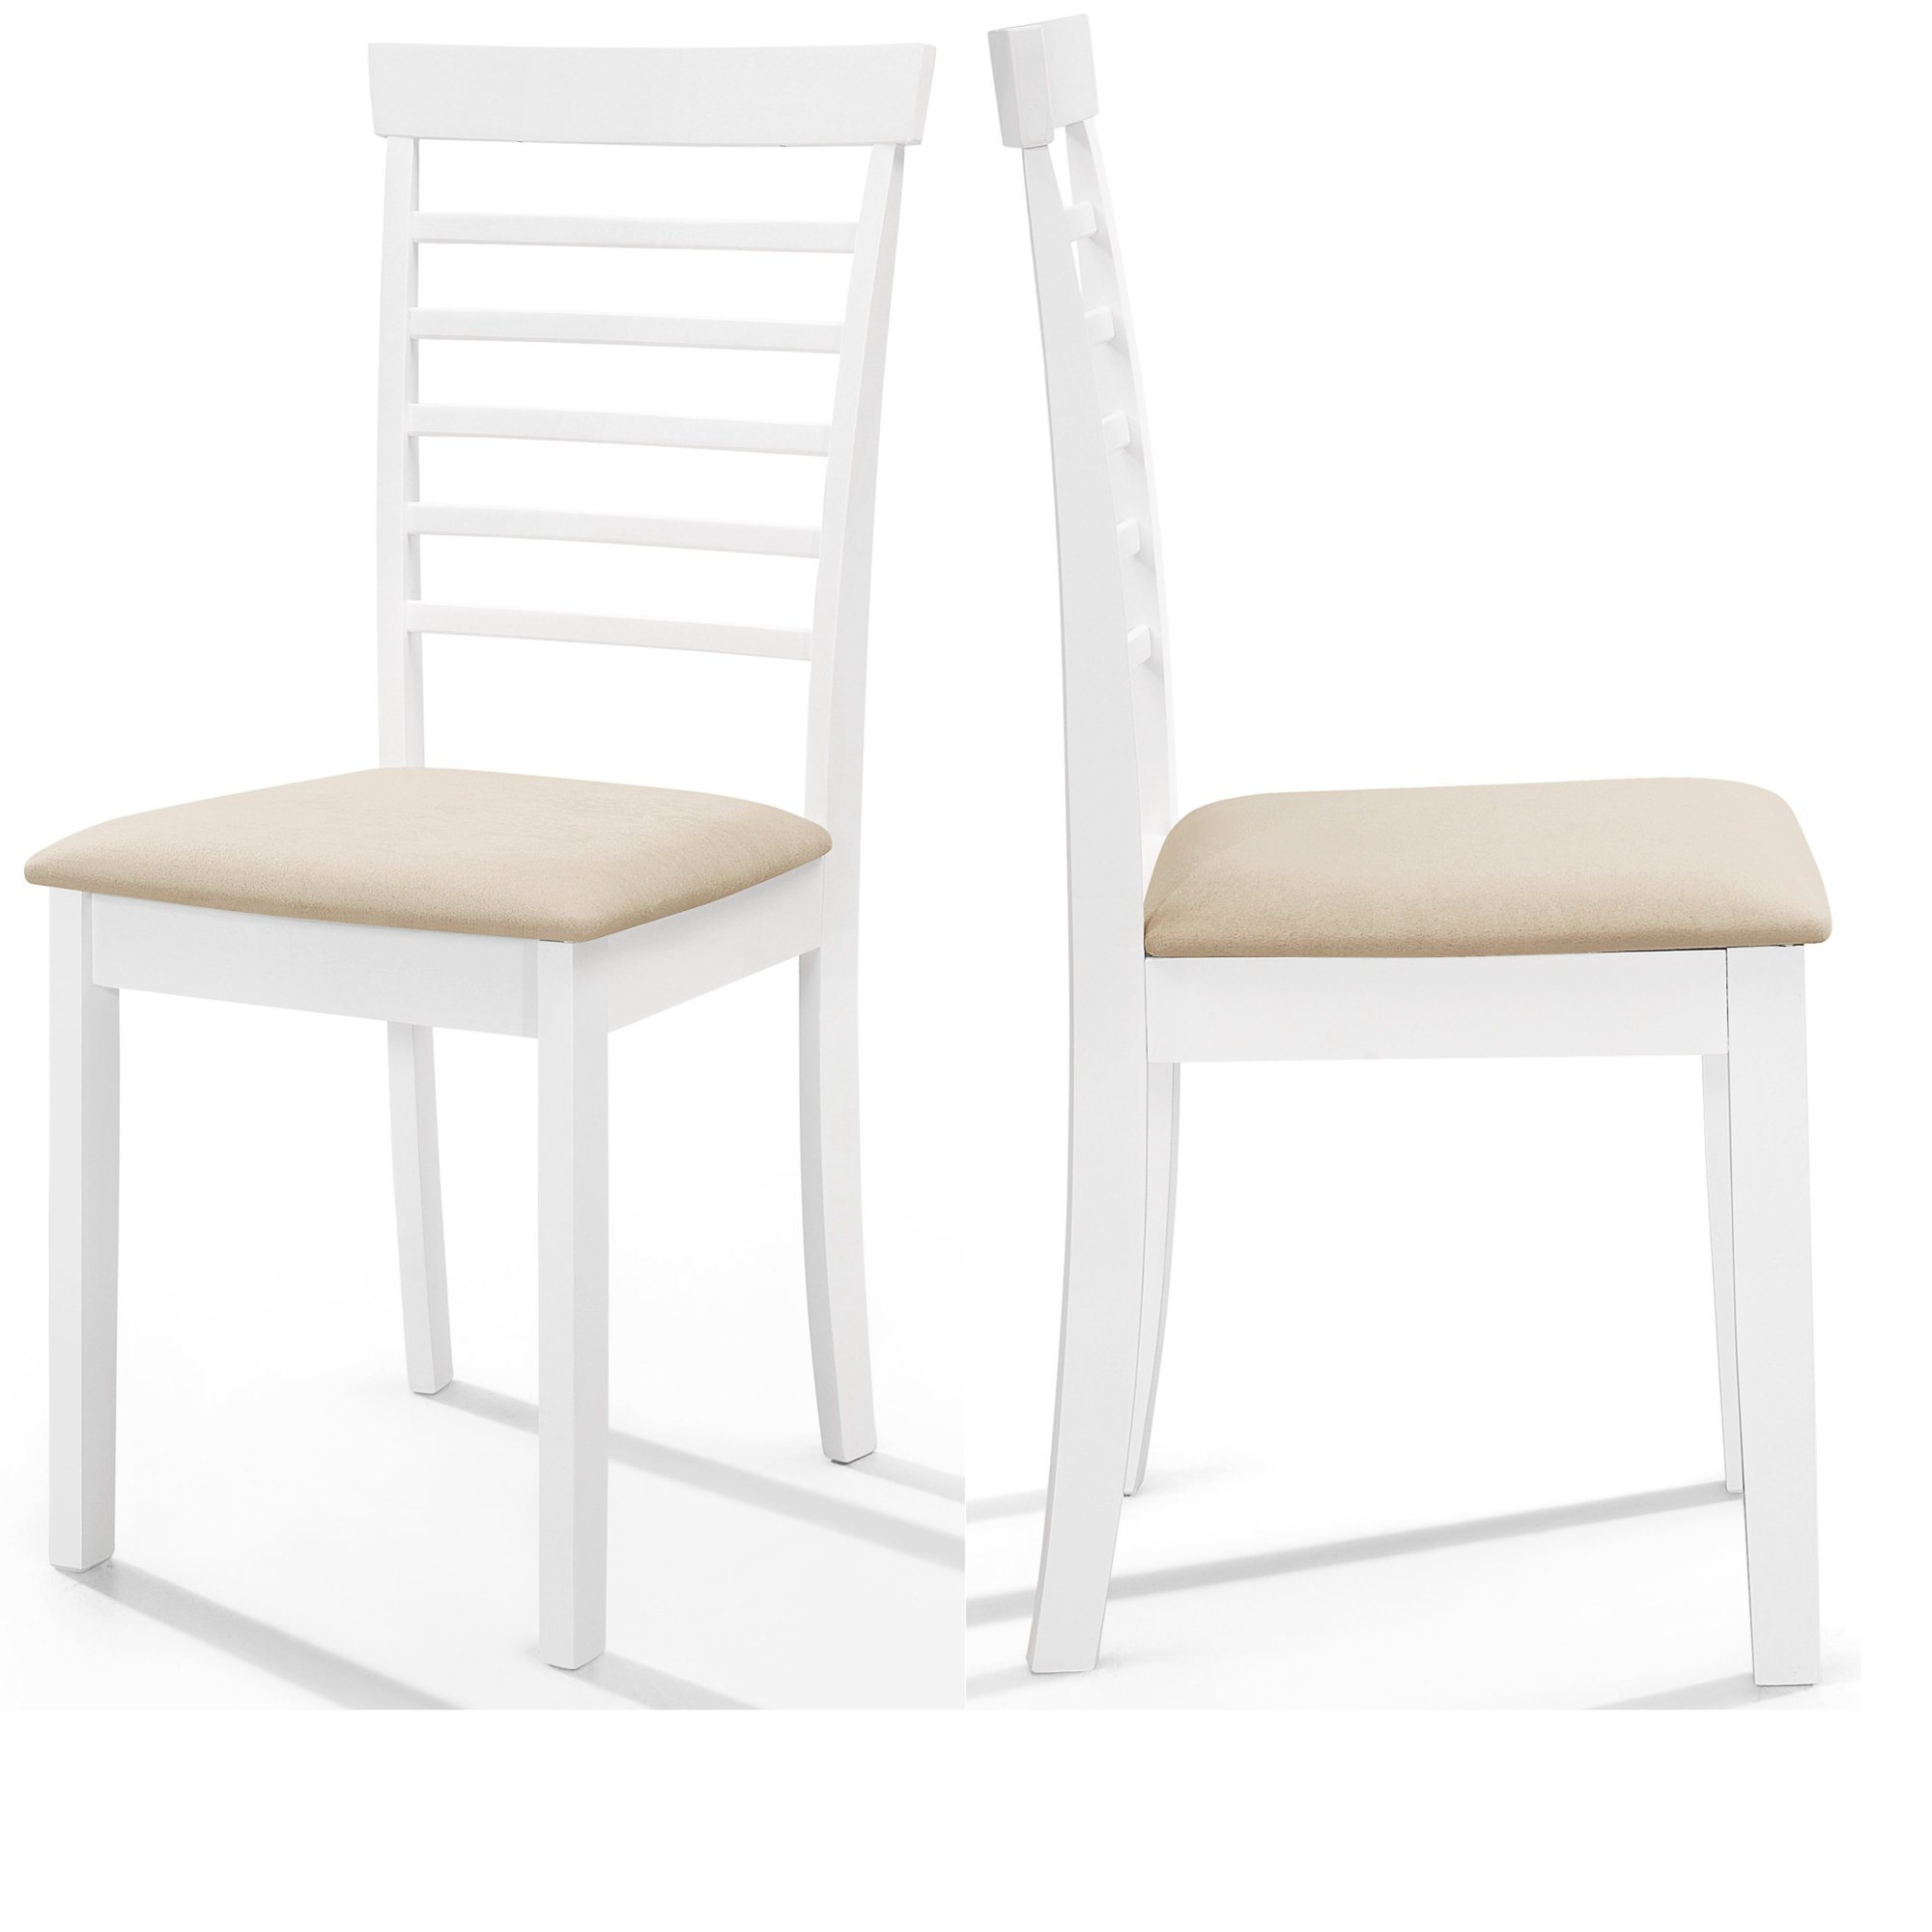 Details about 9 x White Painted Wood Dining Chairs  Wooden Slate Back  Kitchen Seat Pair